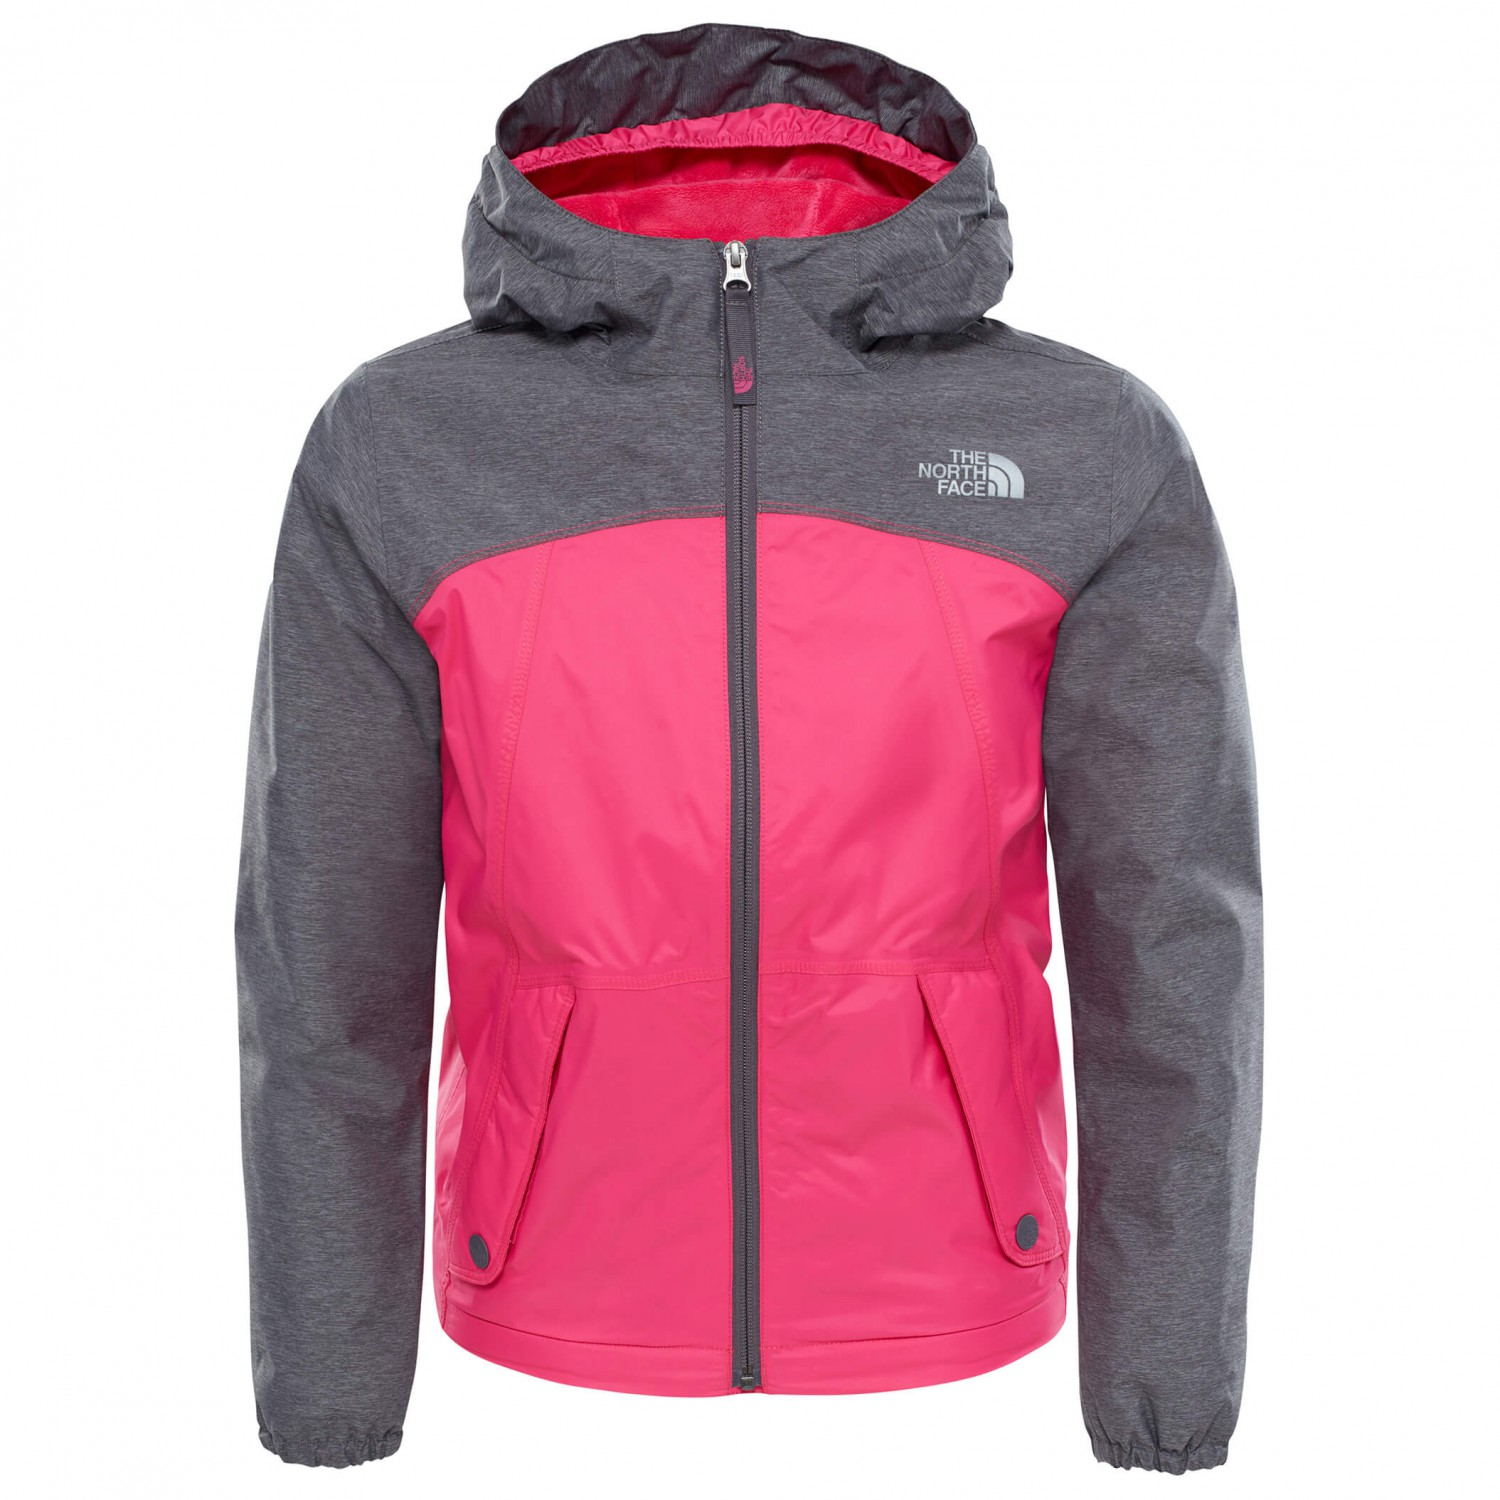 40aa19f92 The North Face - Girl's Warm Storm Jacket - Winter jacket